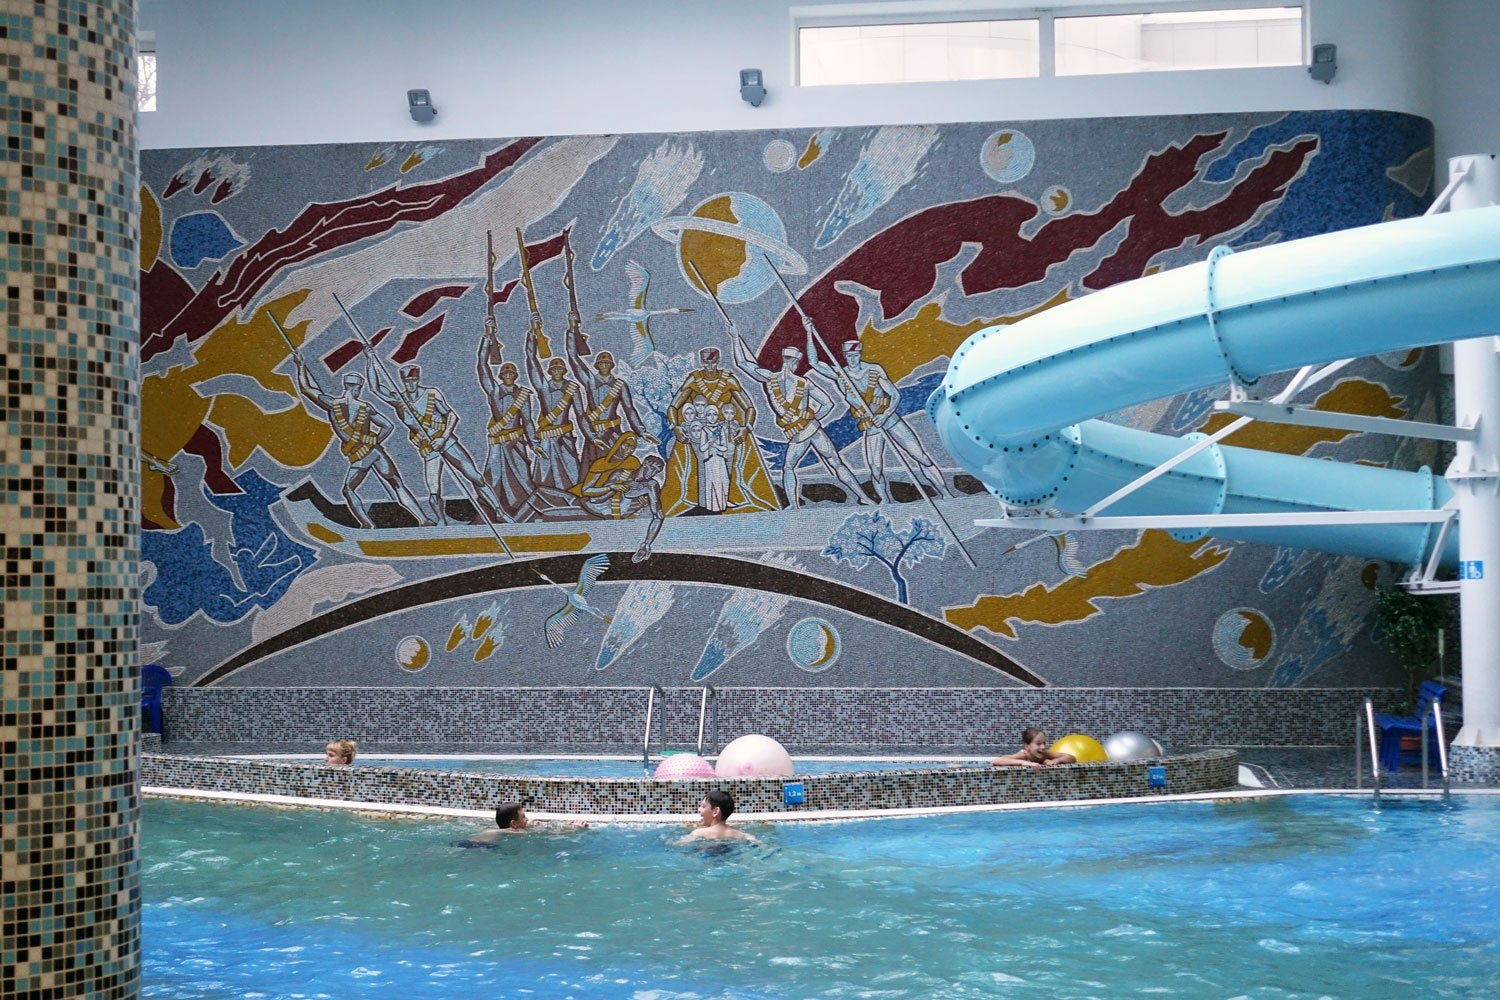 hotel belarus swimming pool with a huge mural on the wall